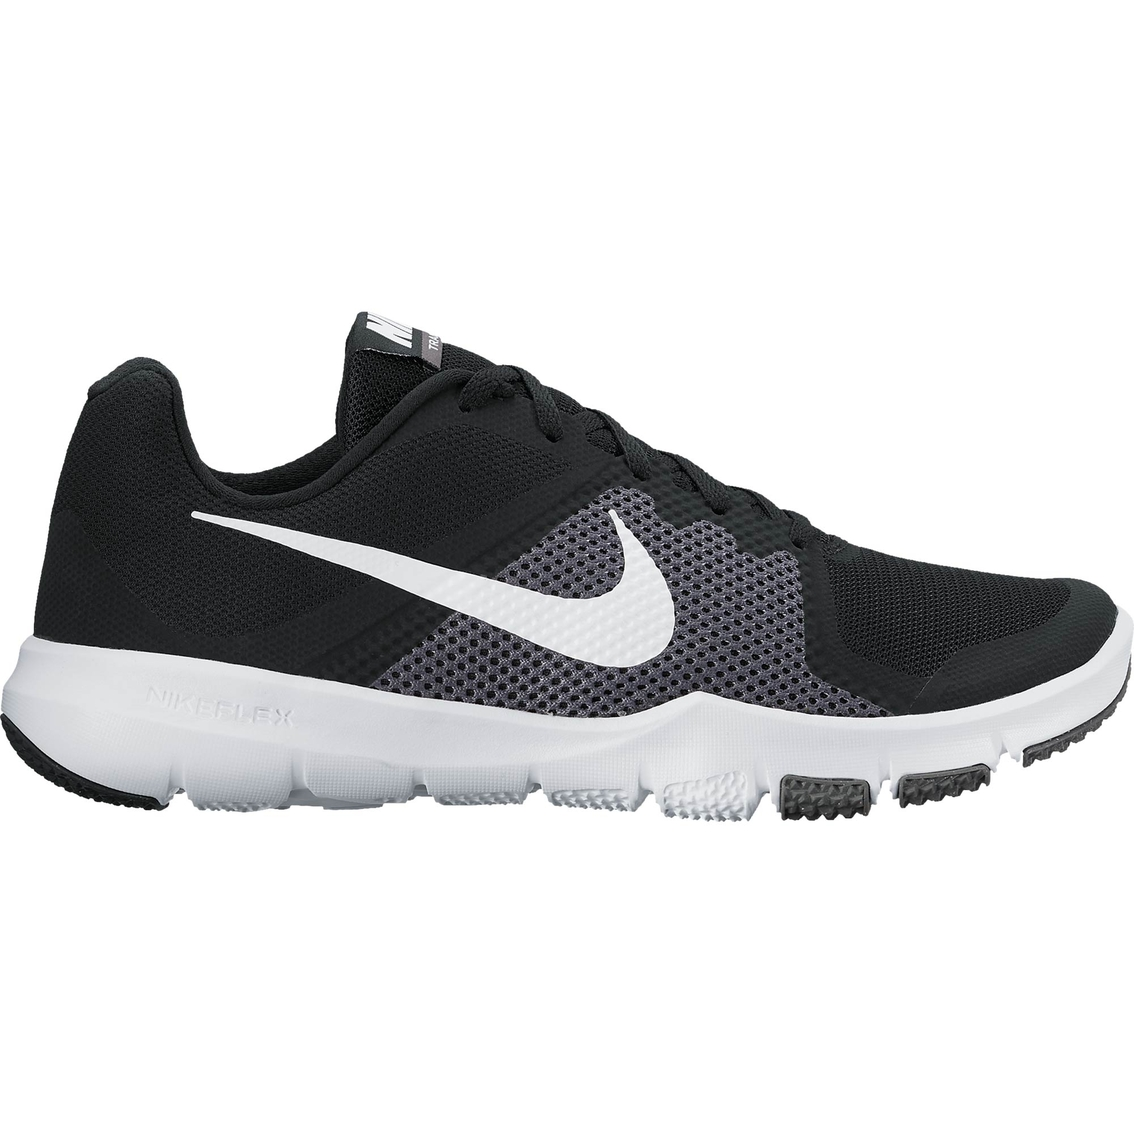 0103bba1b204 Nike Men s Flex Control Tr Training Shoes